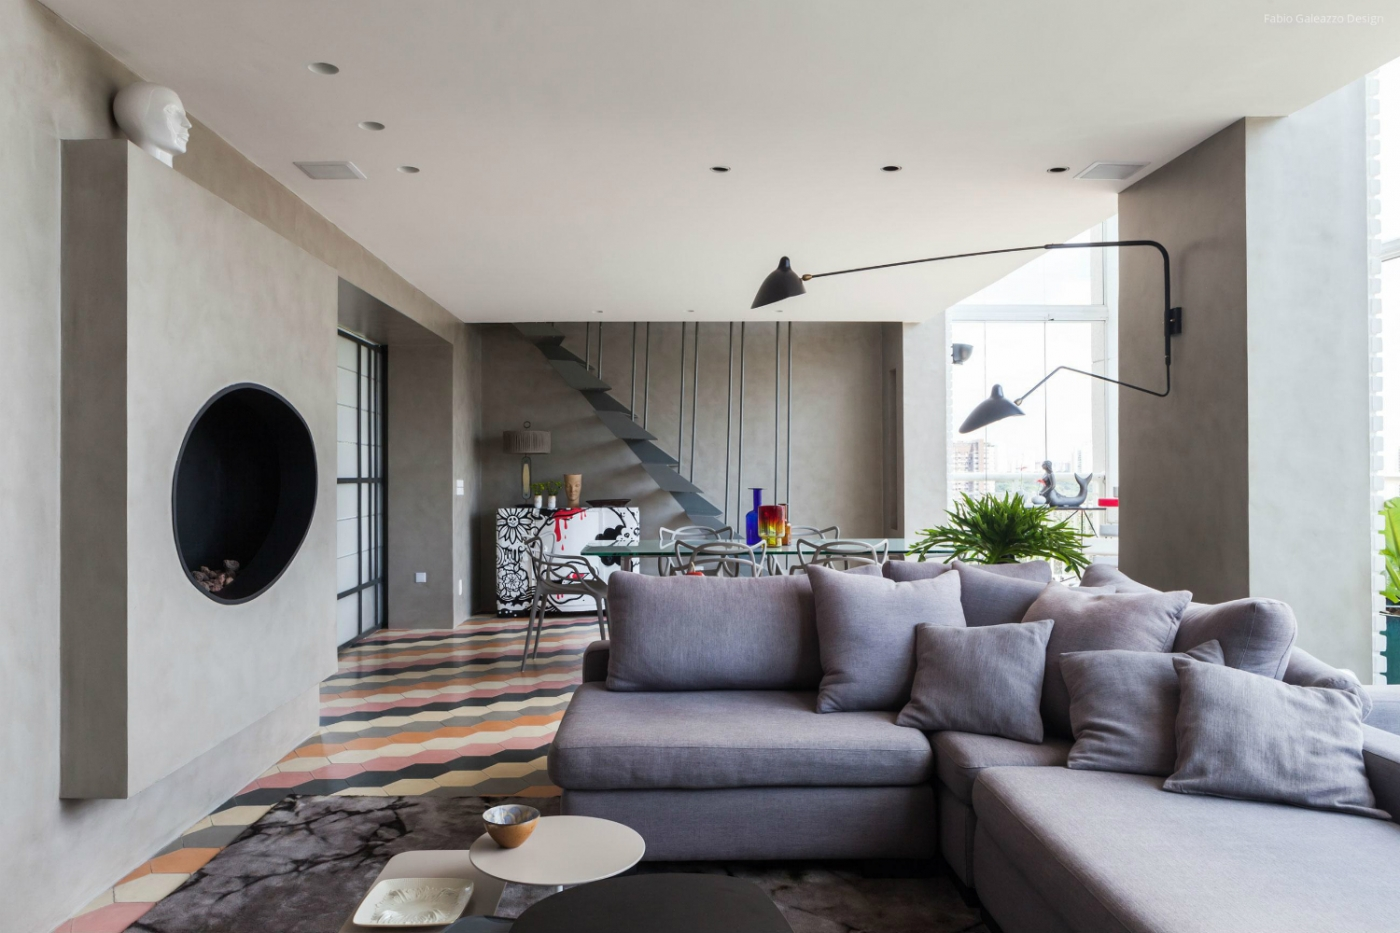 fabio galeazzo Panamby: One Apartment Filled With Colorful Details by Fabio Galeazzo featured 3 1400x933